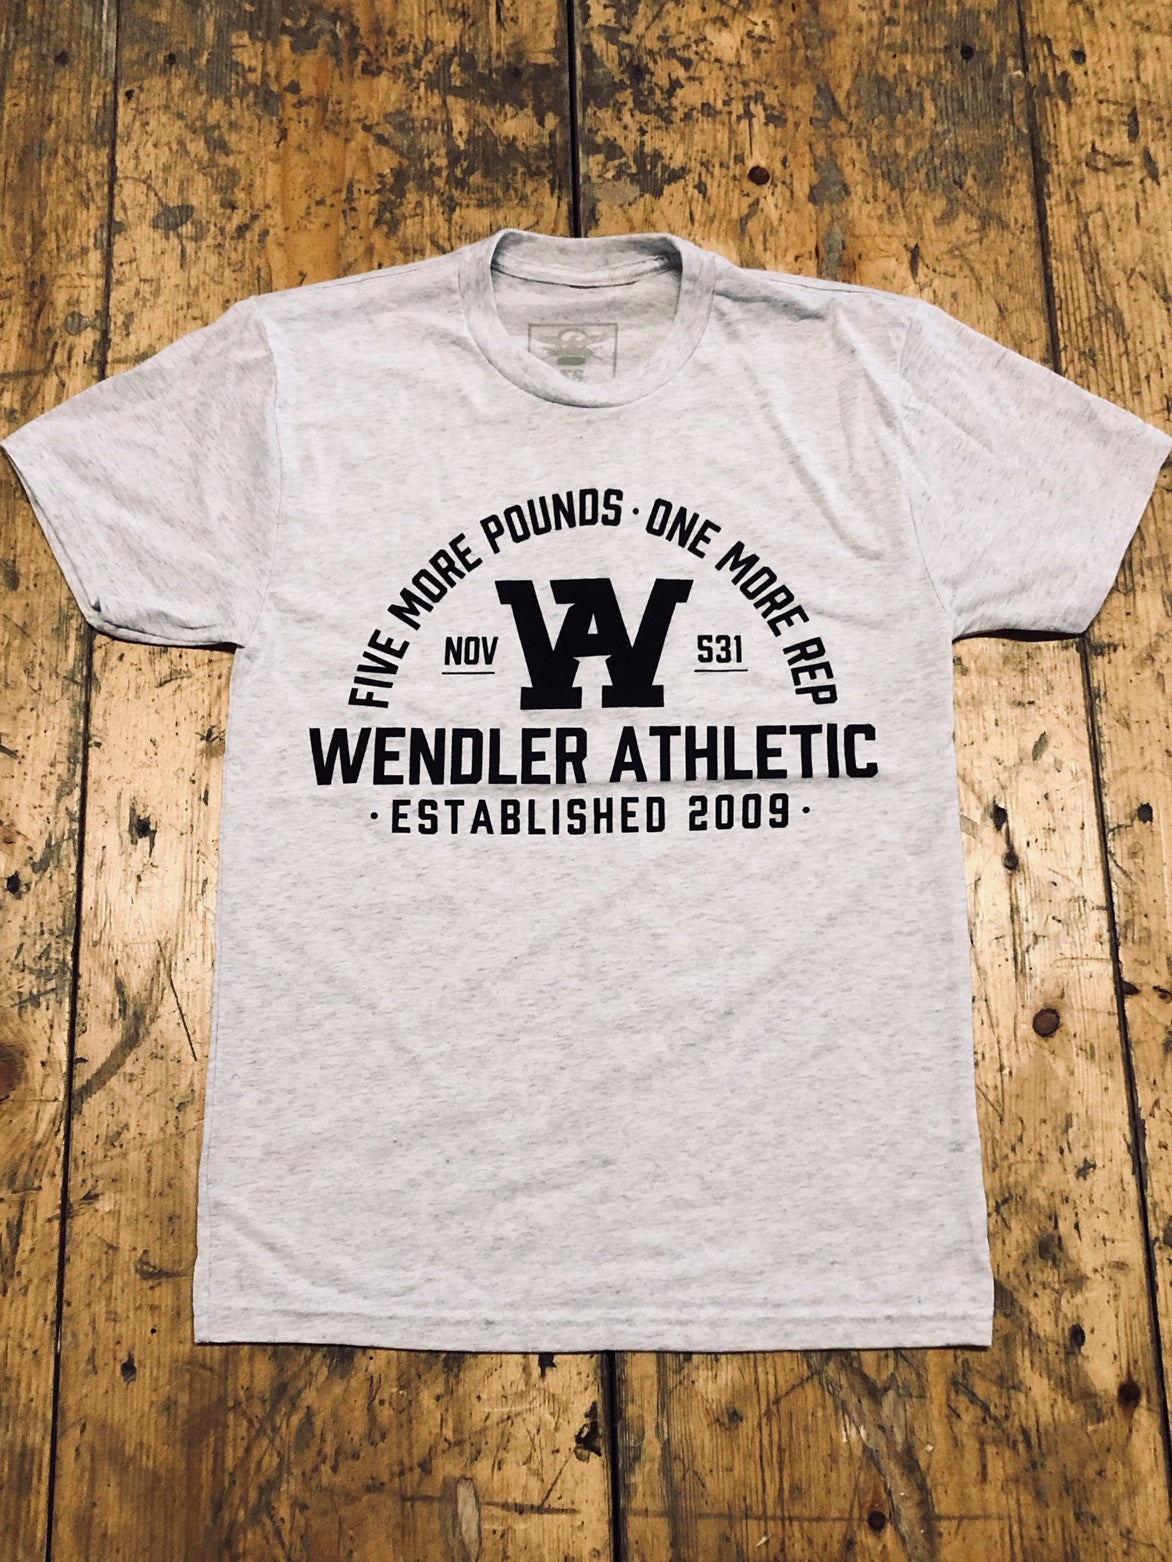 1 More Rep Shirt - JimWendler.com